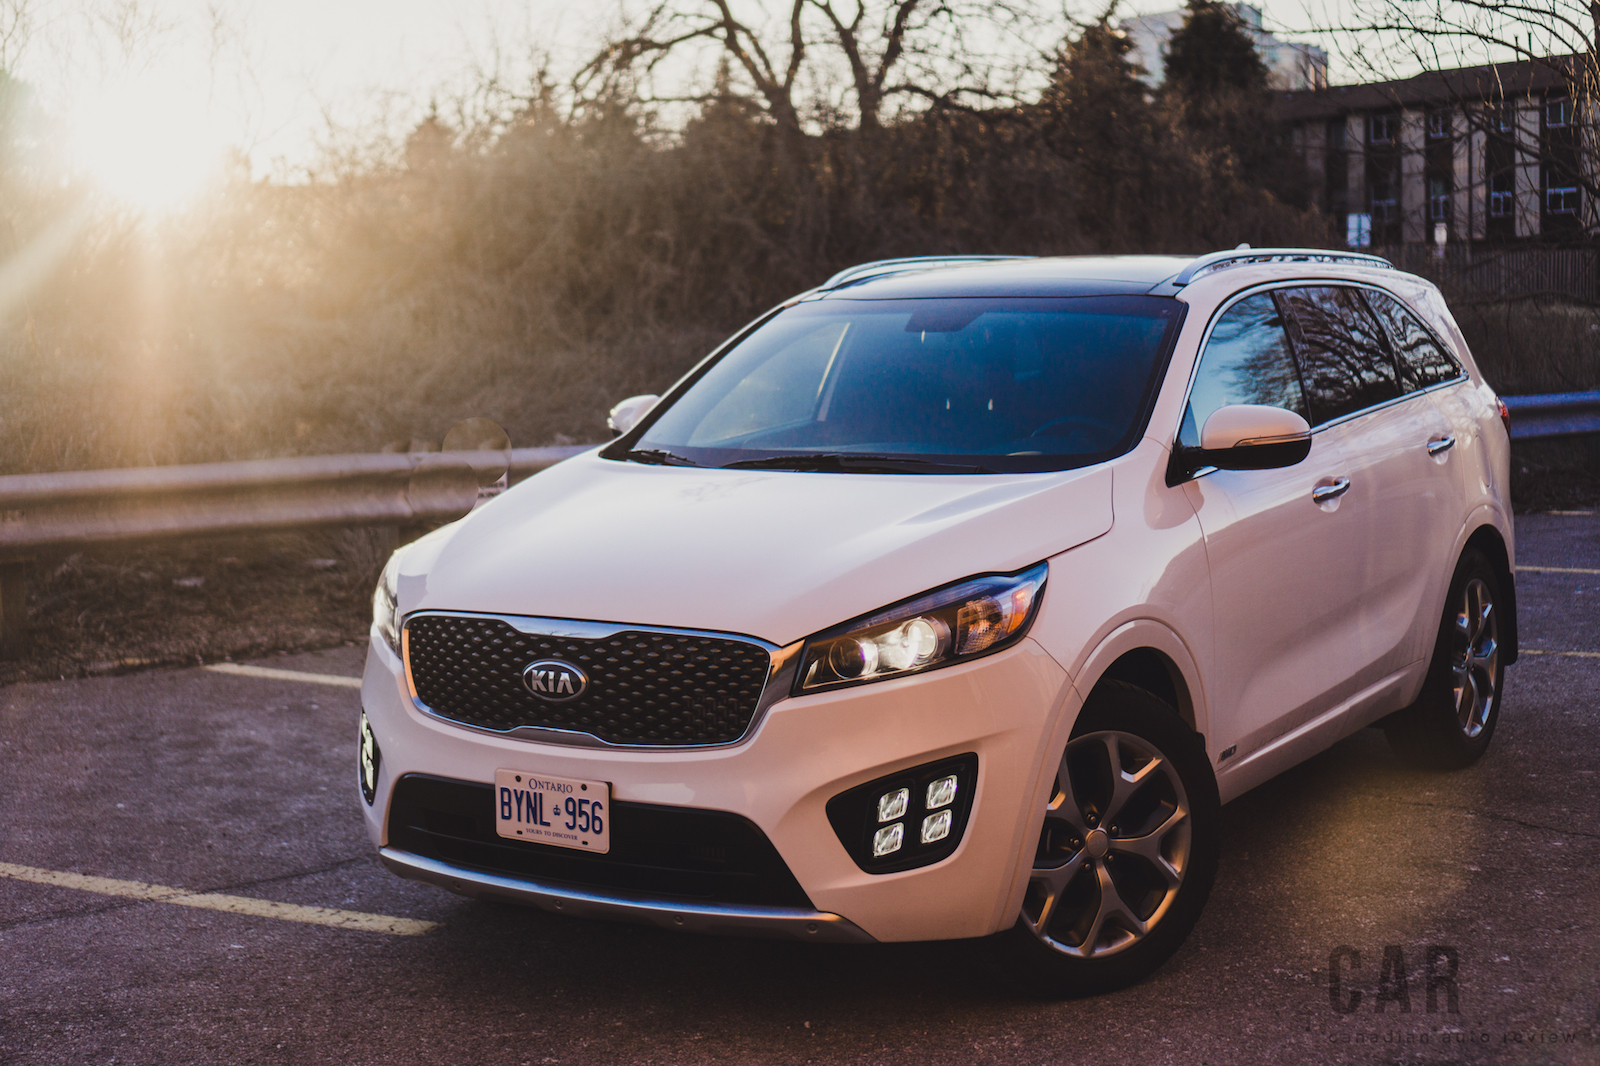 2019 Kia Sorento Expert Reviews, Specs and Photos | Cars.com